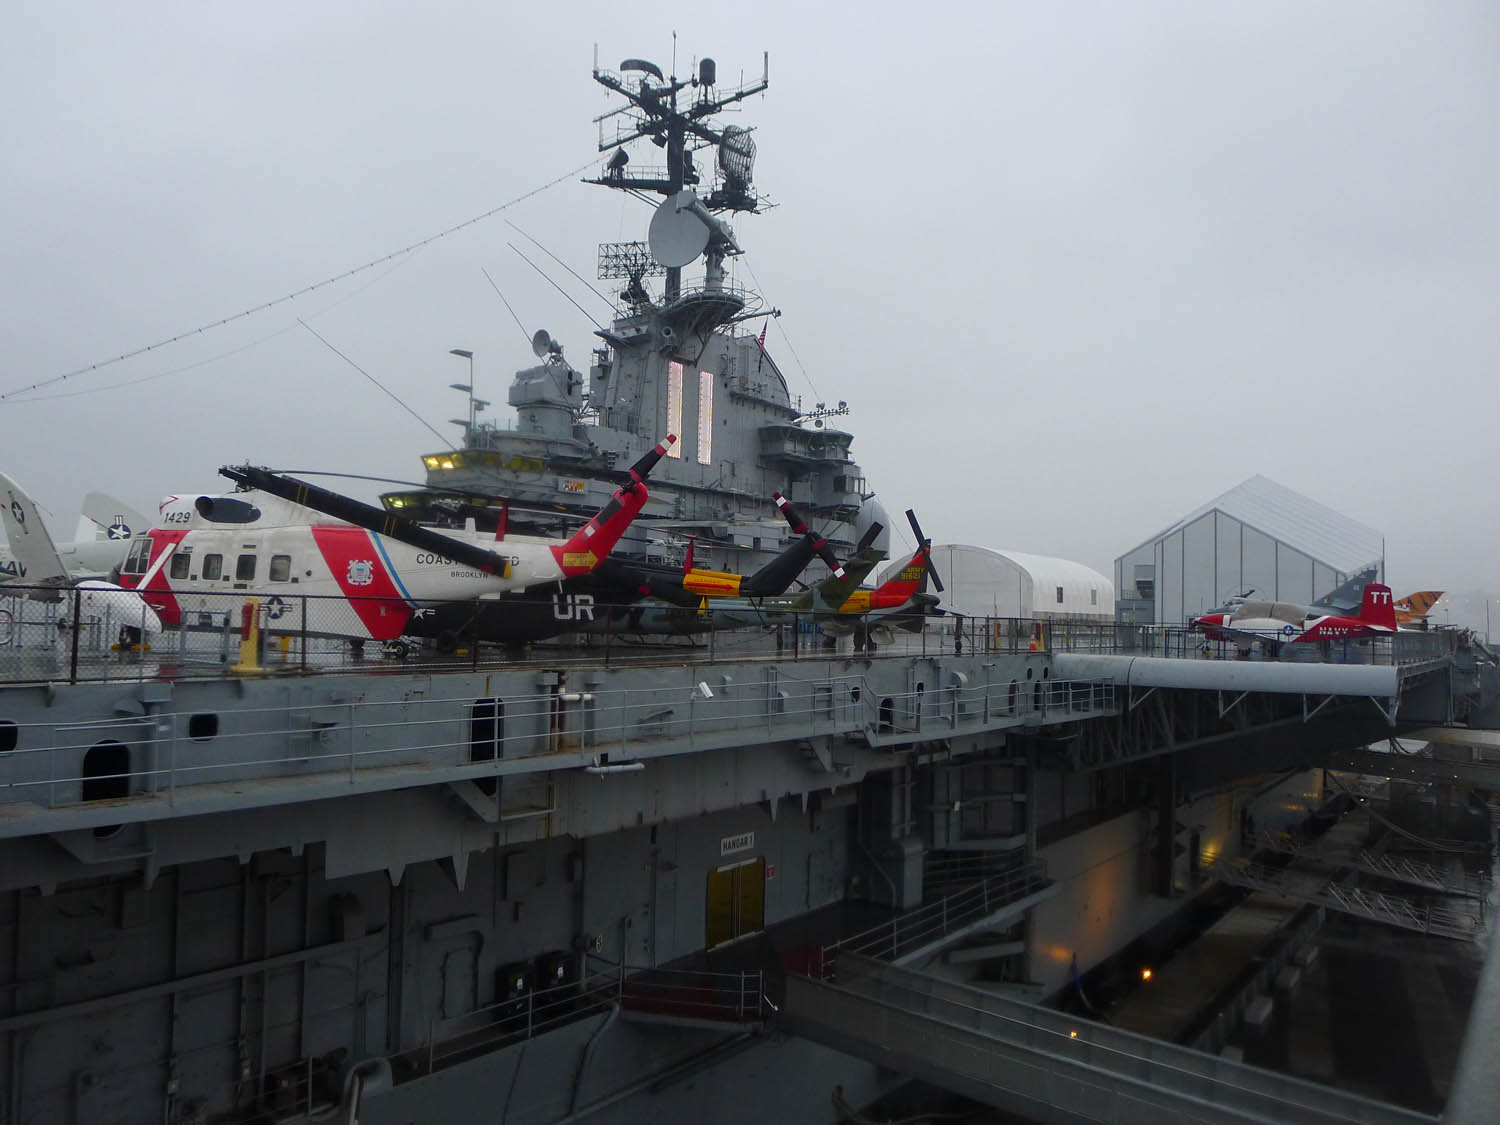 …went aboard the USS Intrepid